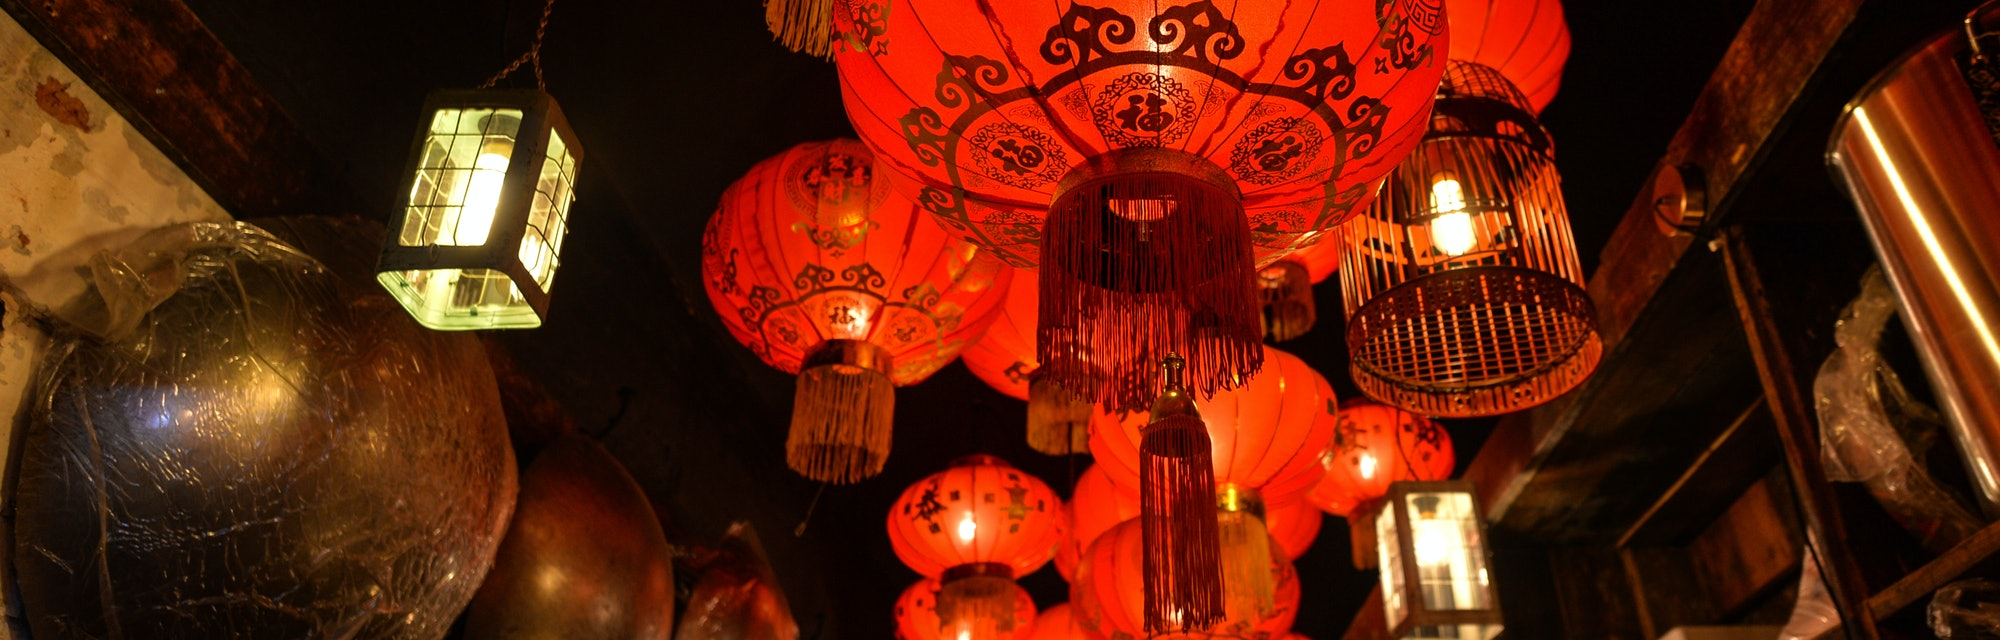 The Lunar New Year 2021 celebration begins on Feb. 12 and lasts for 15 days.